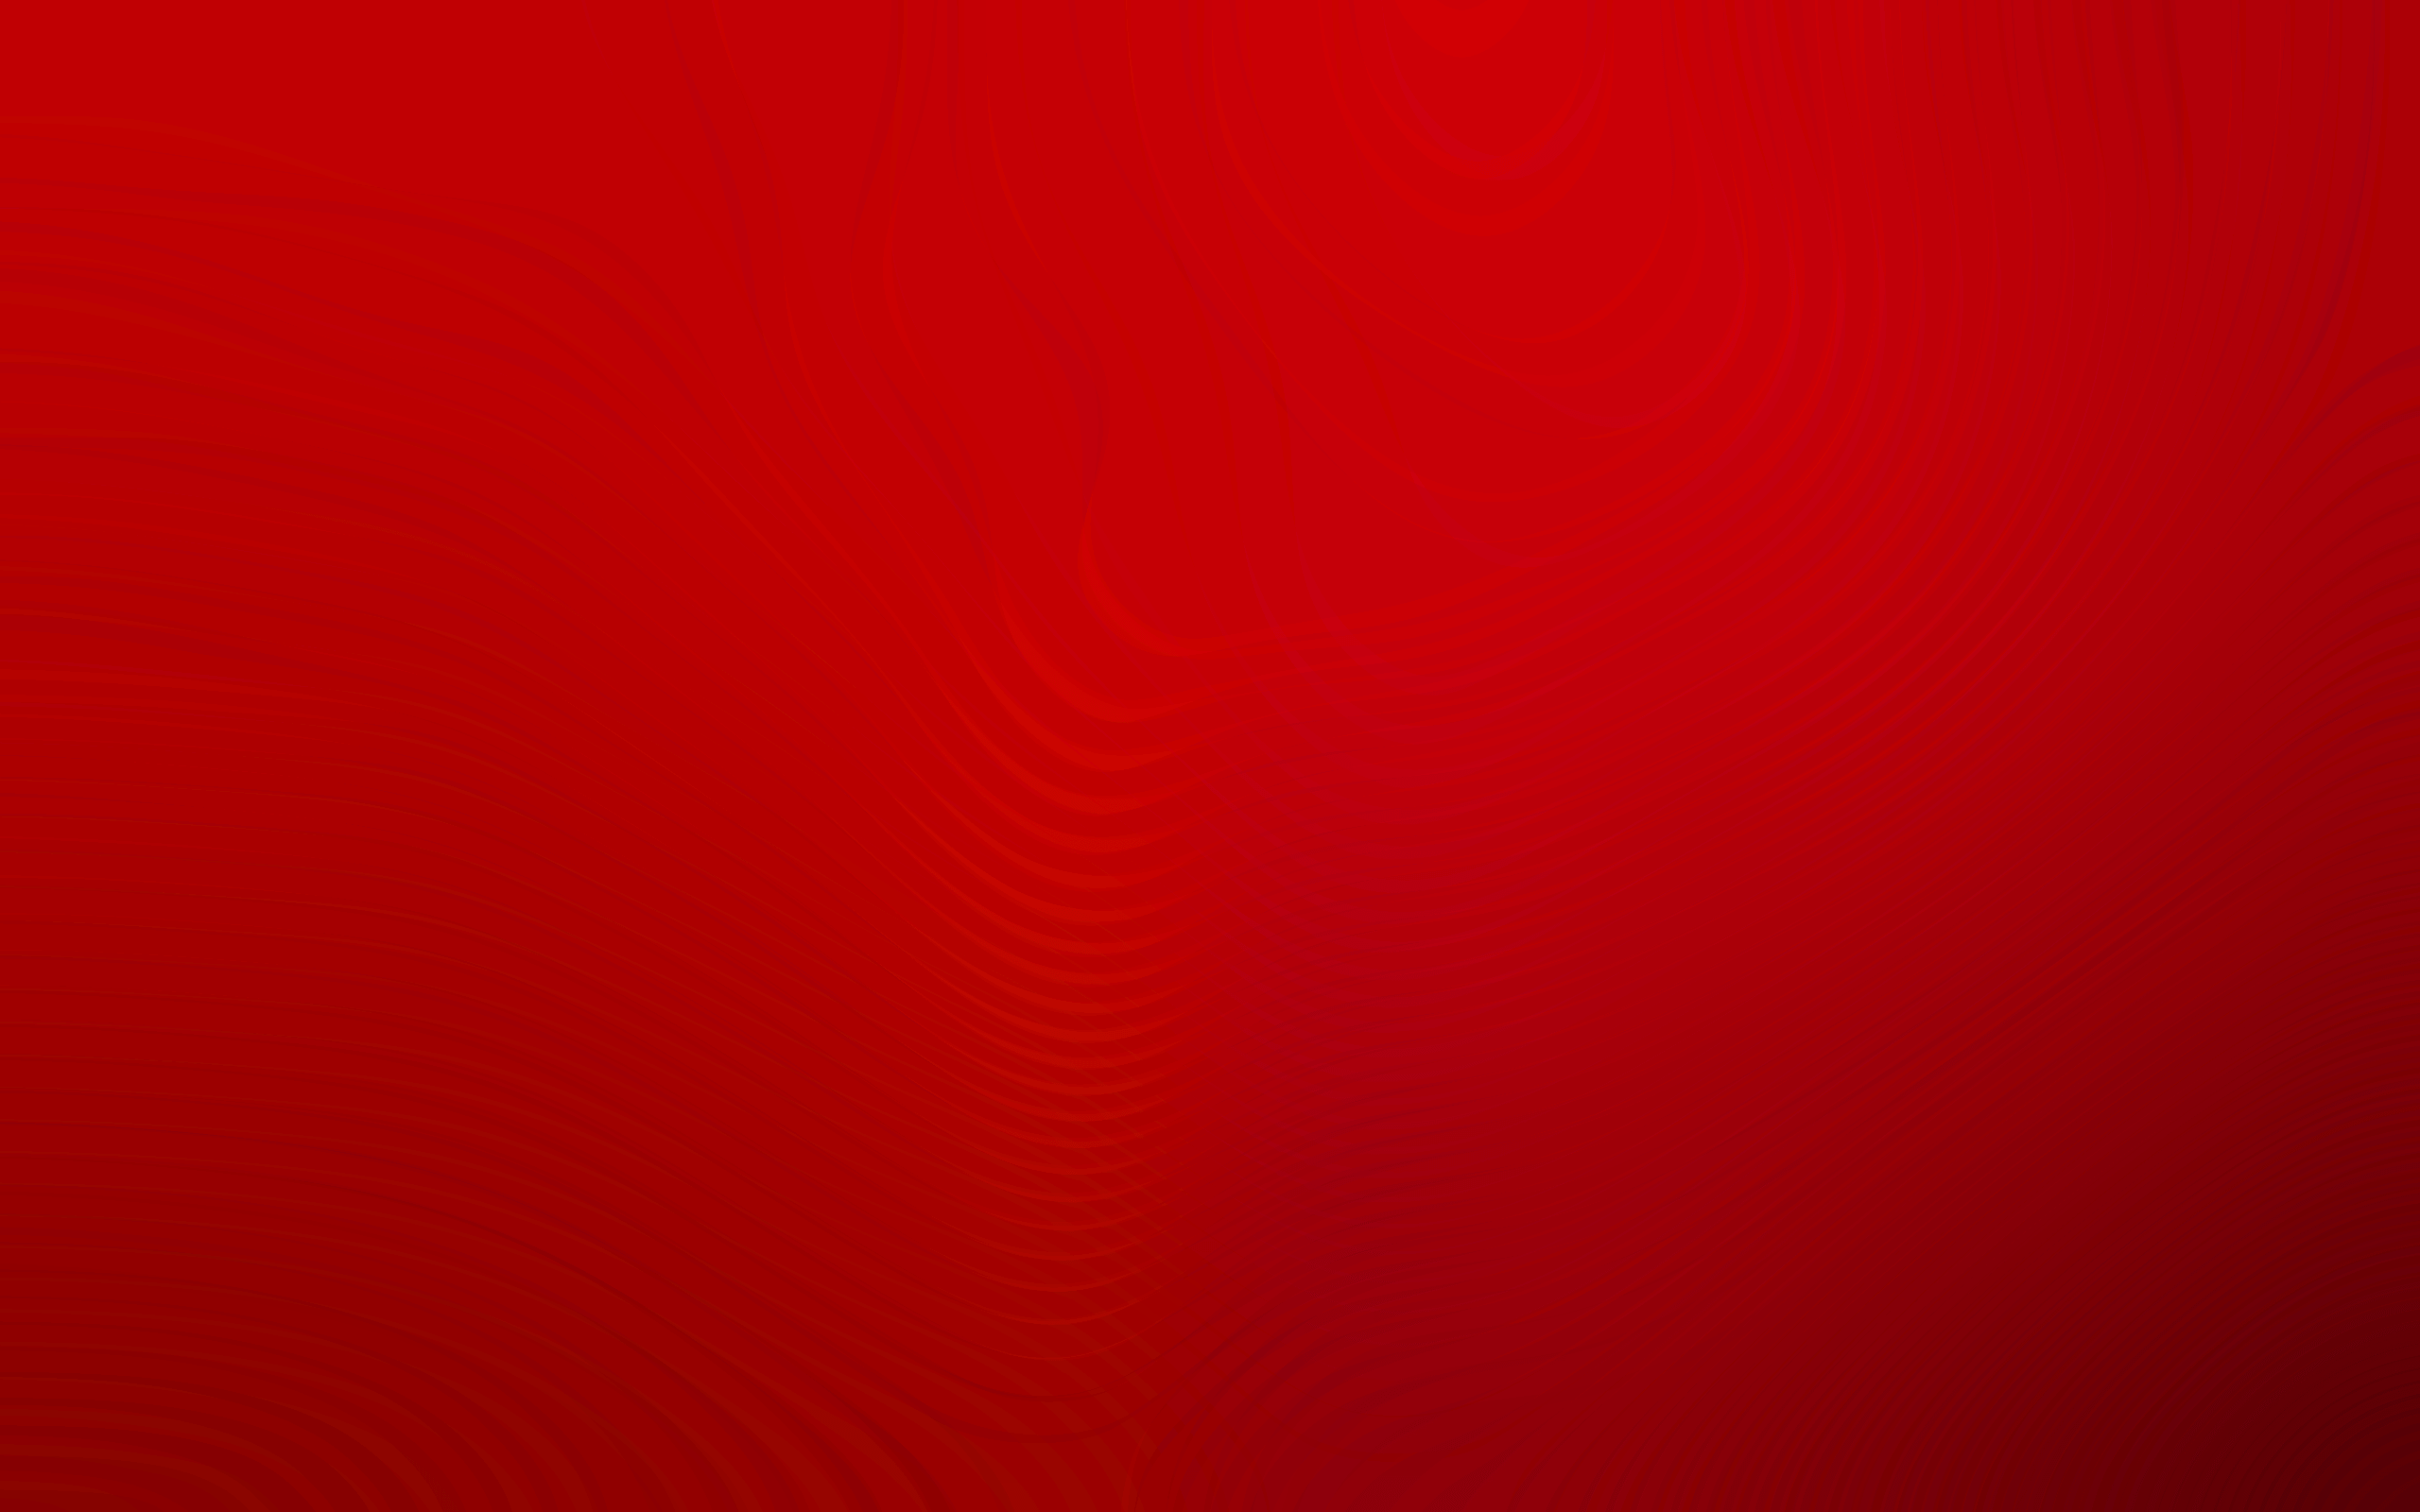 Download 68 Background Biru Merah Gratis Terbaik